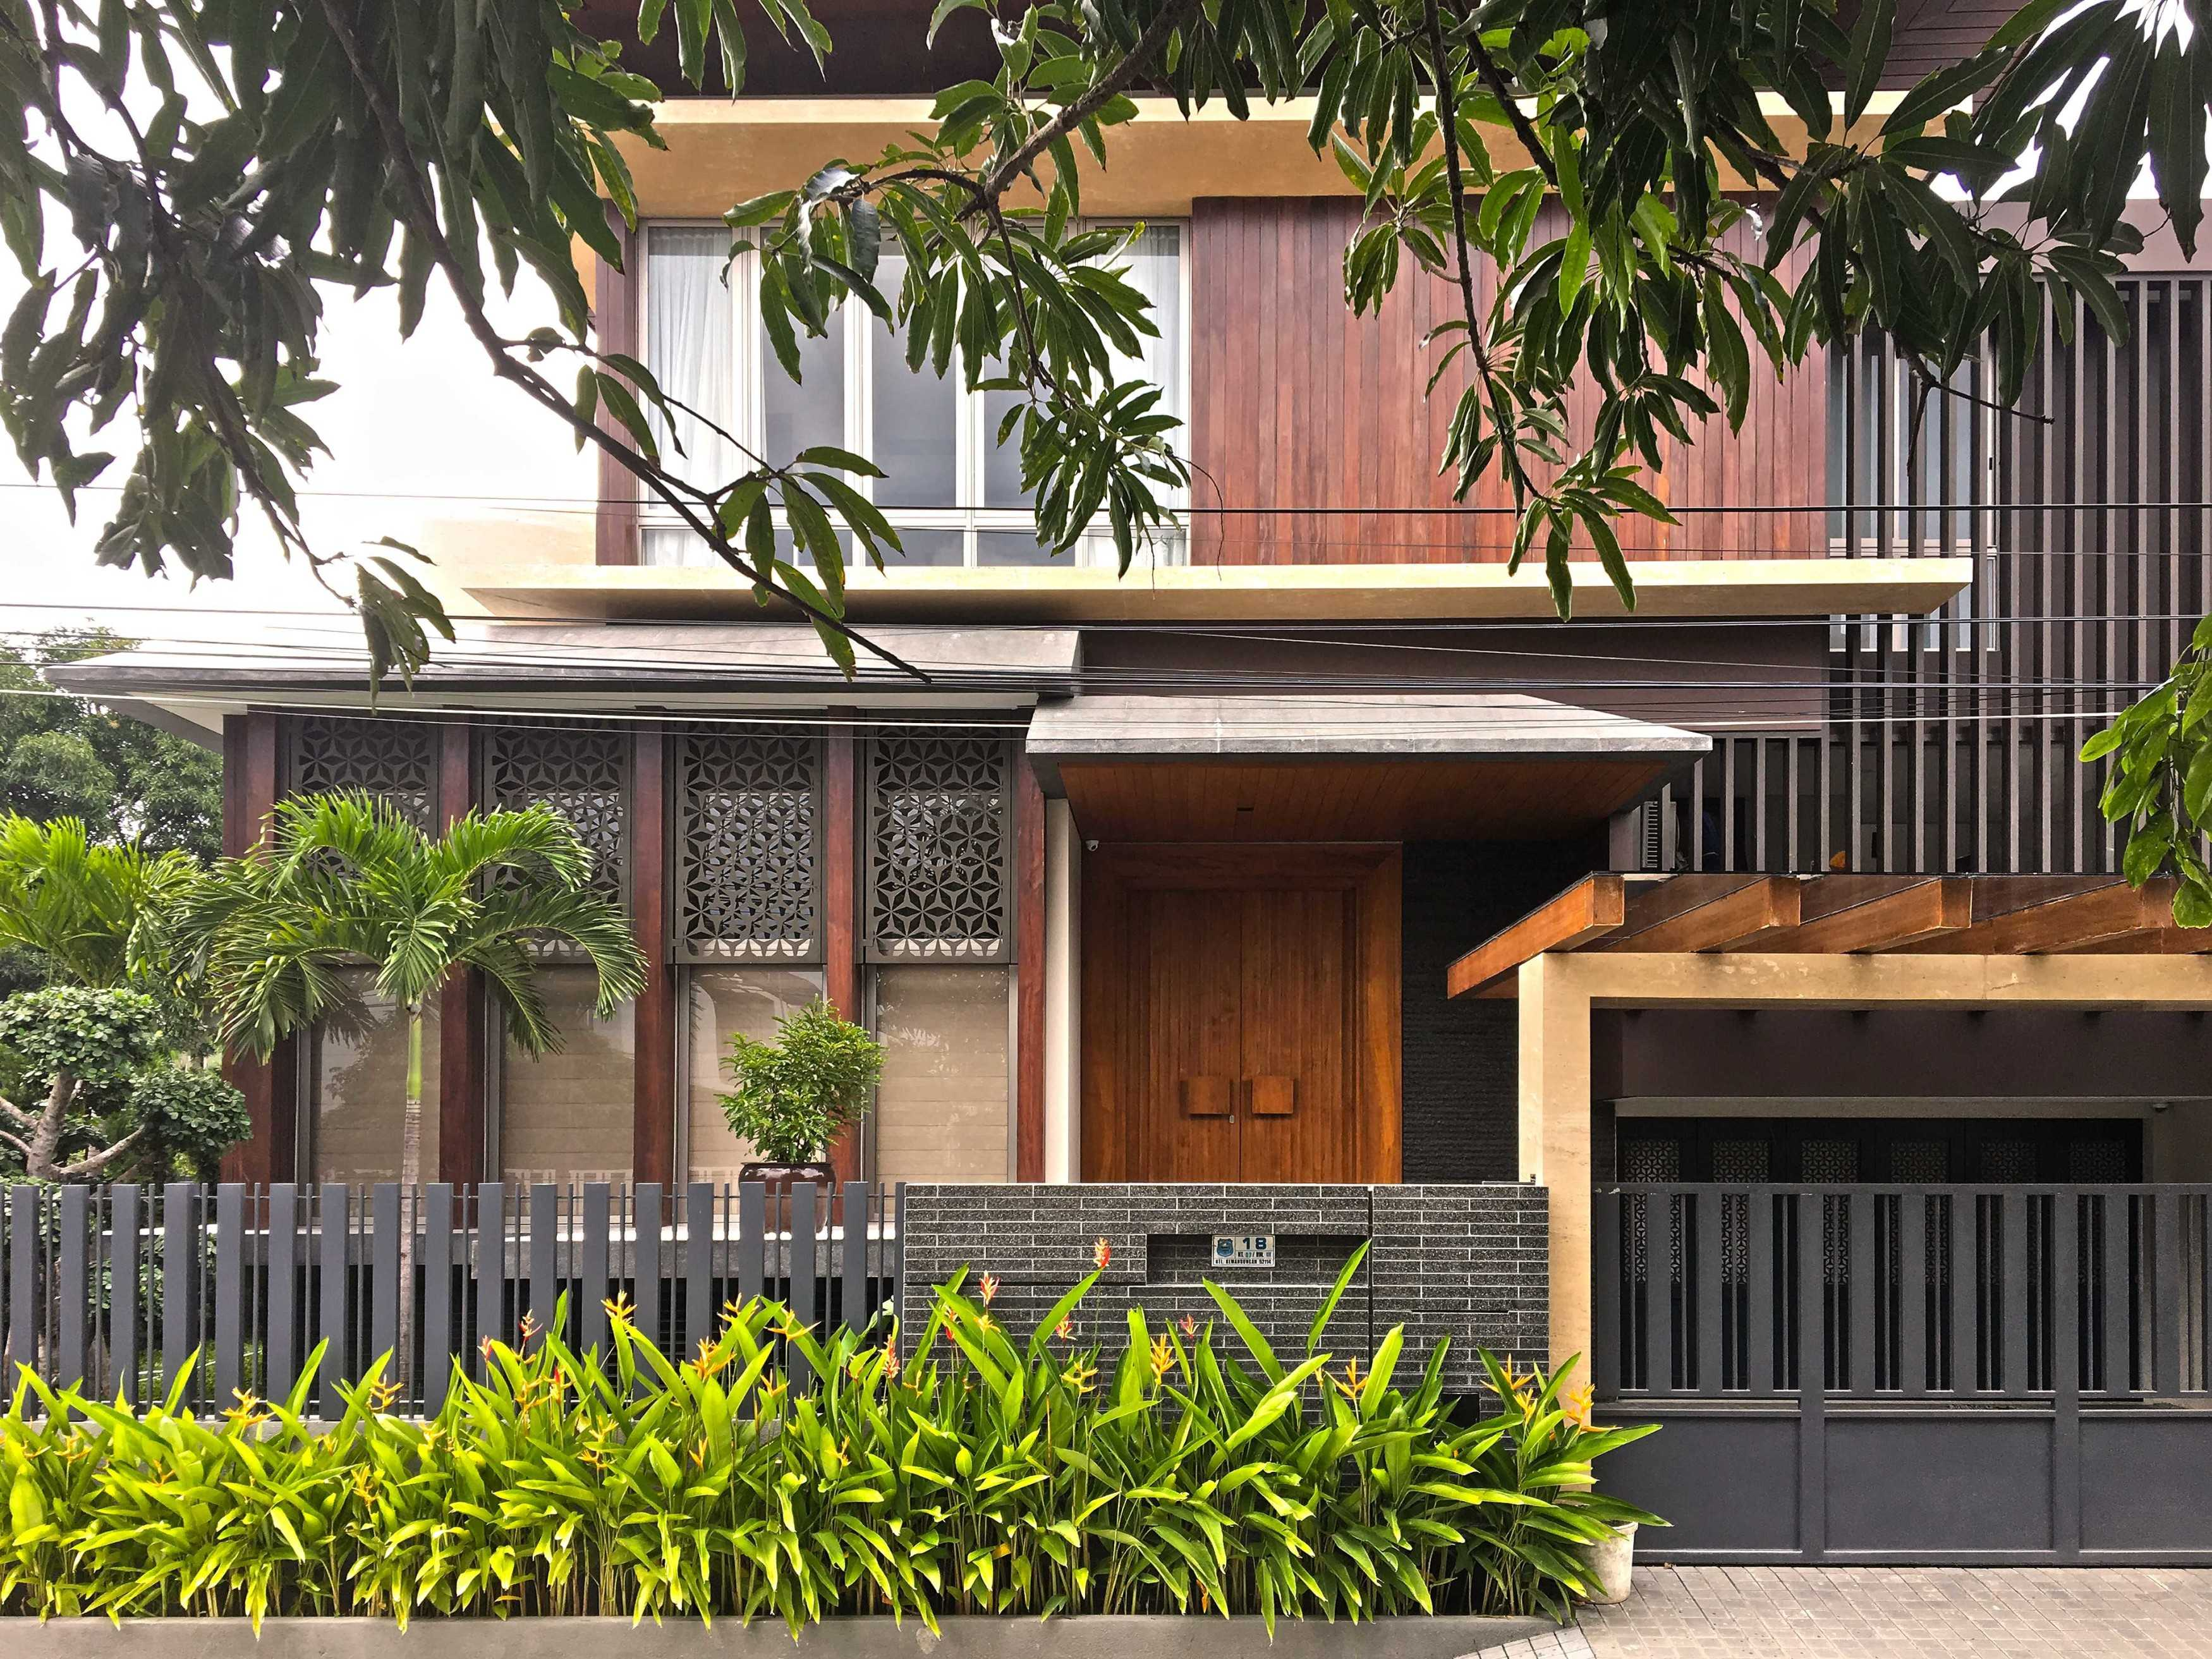 Lex And Architects Nr House Tegal, Jawa Tengah, Indonesia Tegal, Jawa Tengah, Indonesia Lex-And-Architects-Nr-House   68905